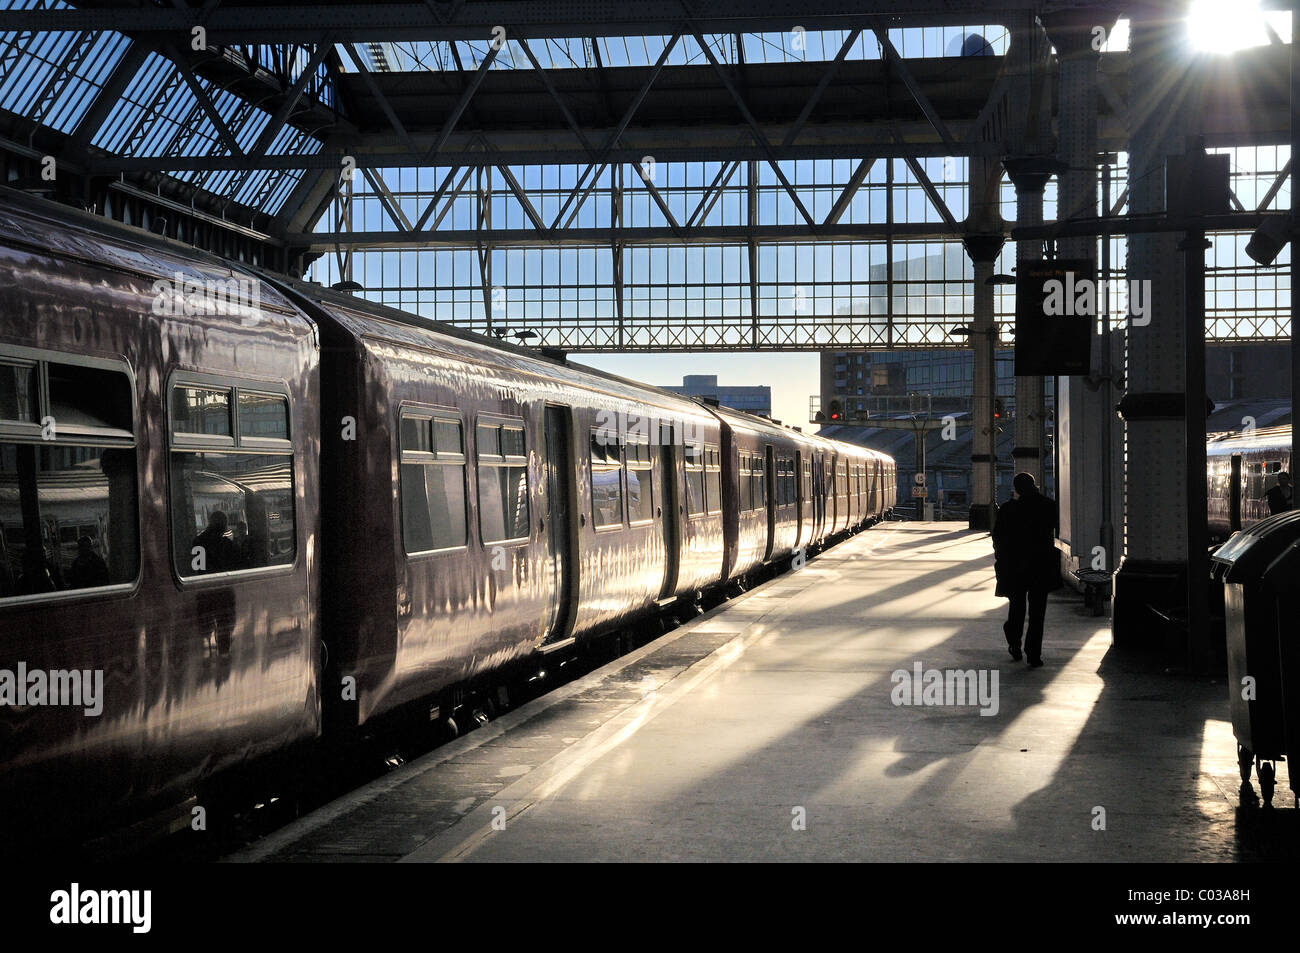 Waterloo Station with train at platform - Stock Image